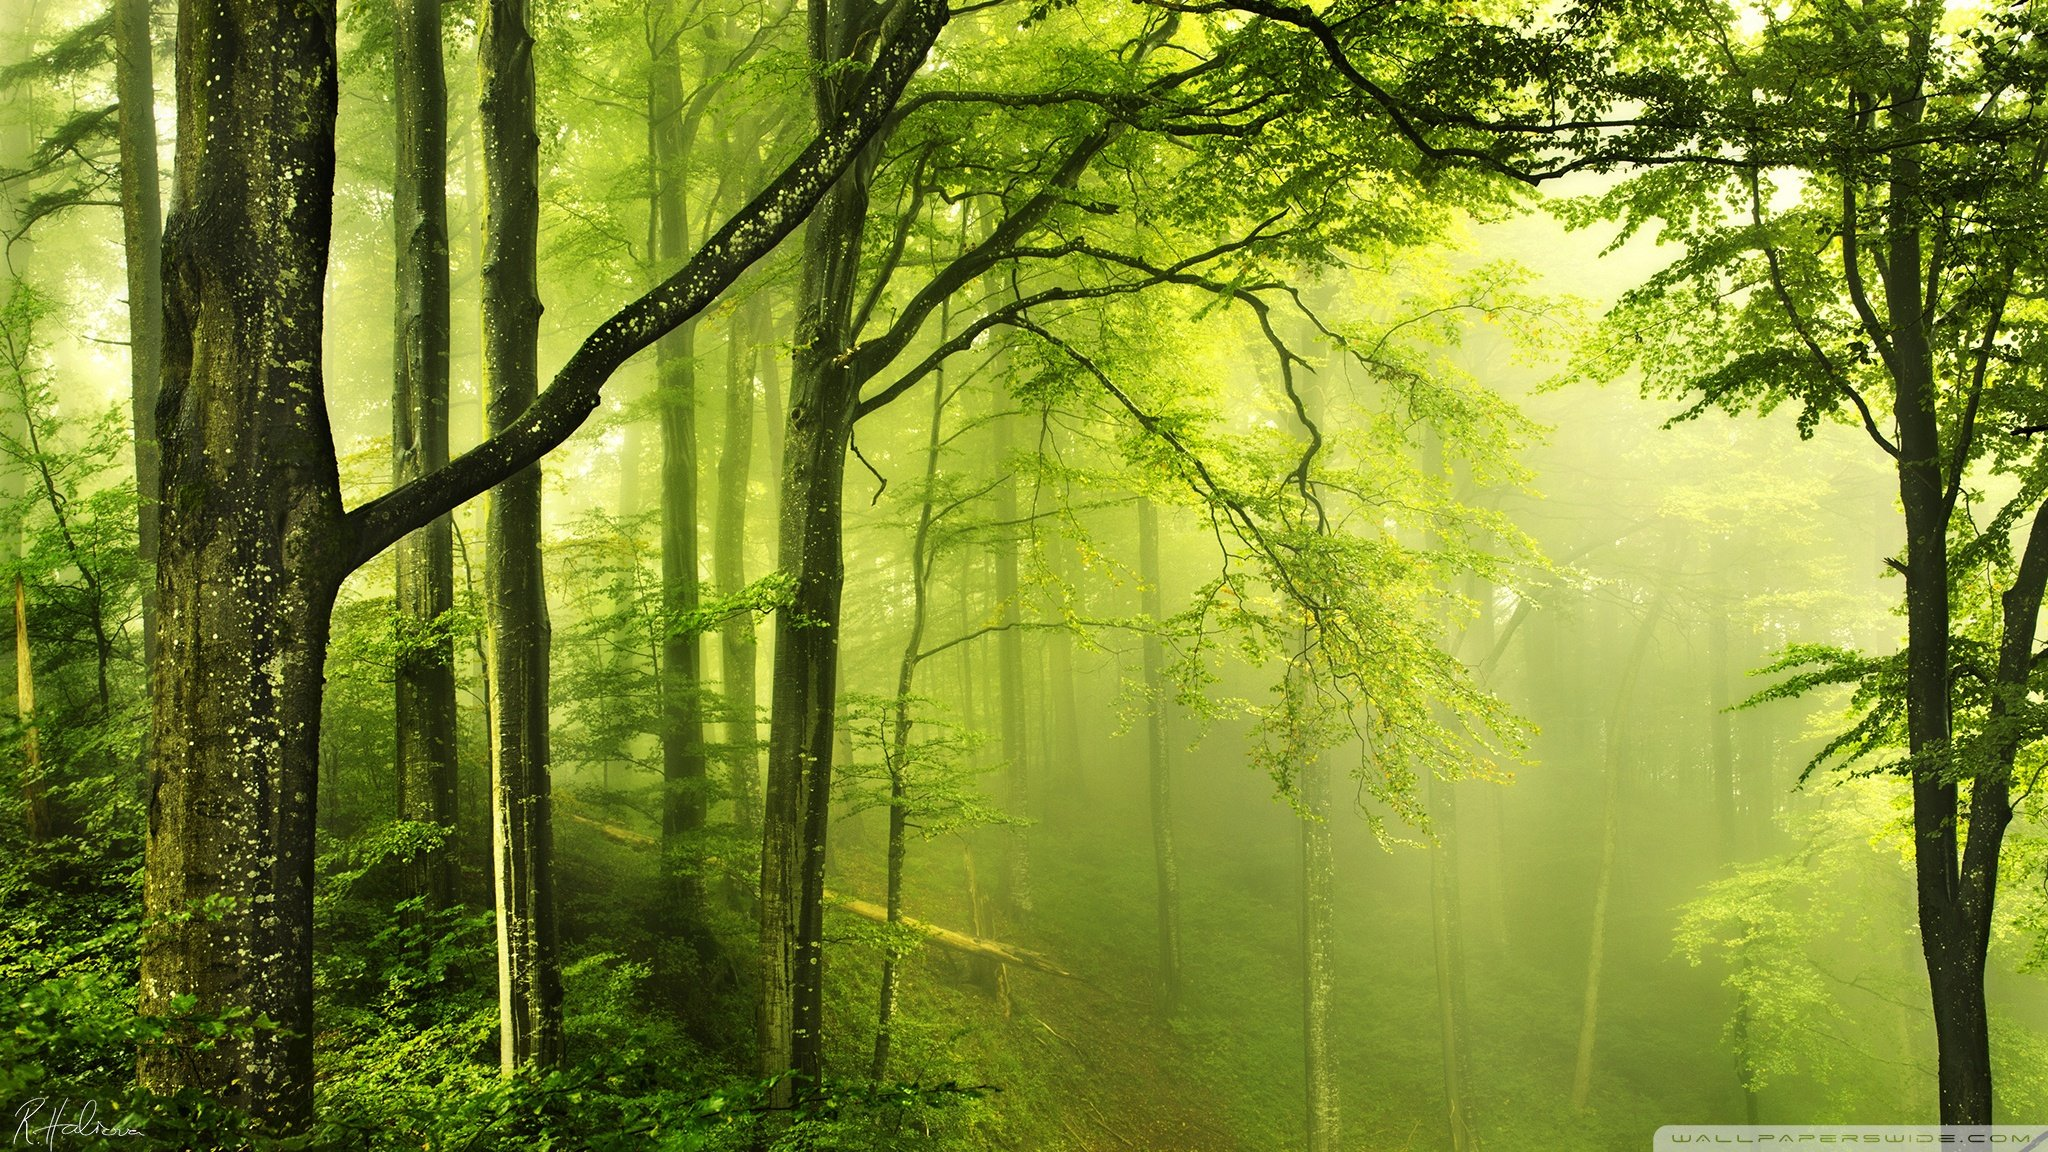 25 Hd Green Forest Wallpapers On Wallpapersafari